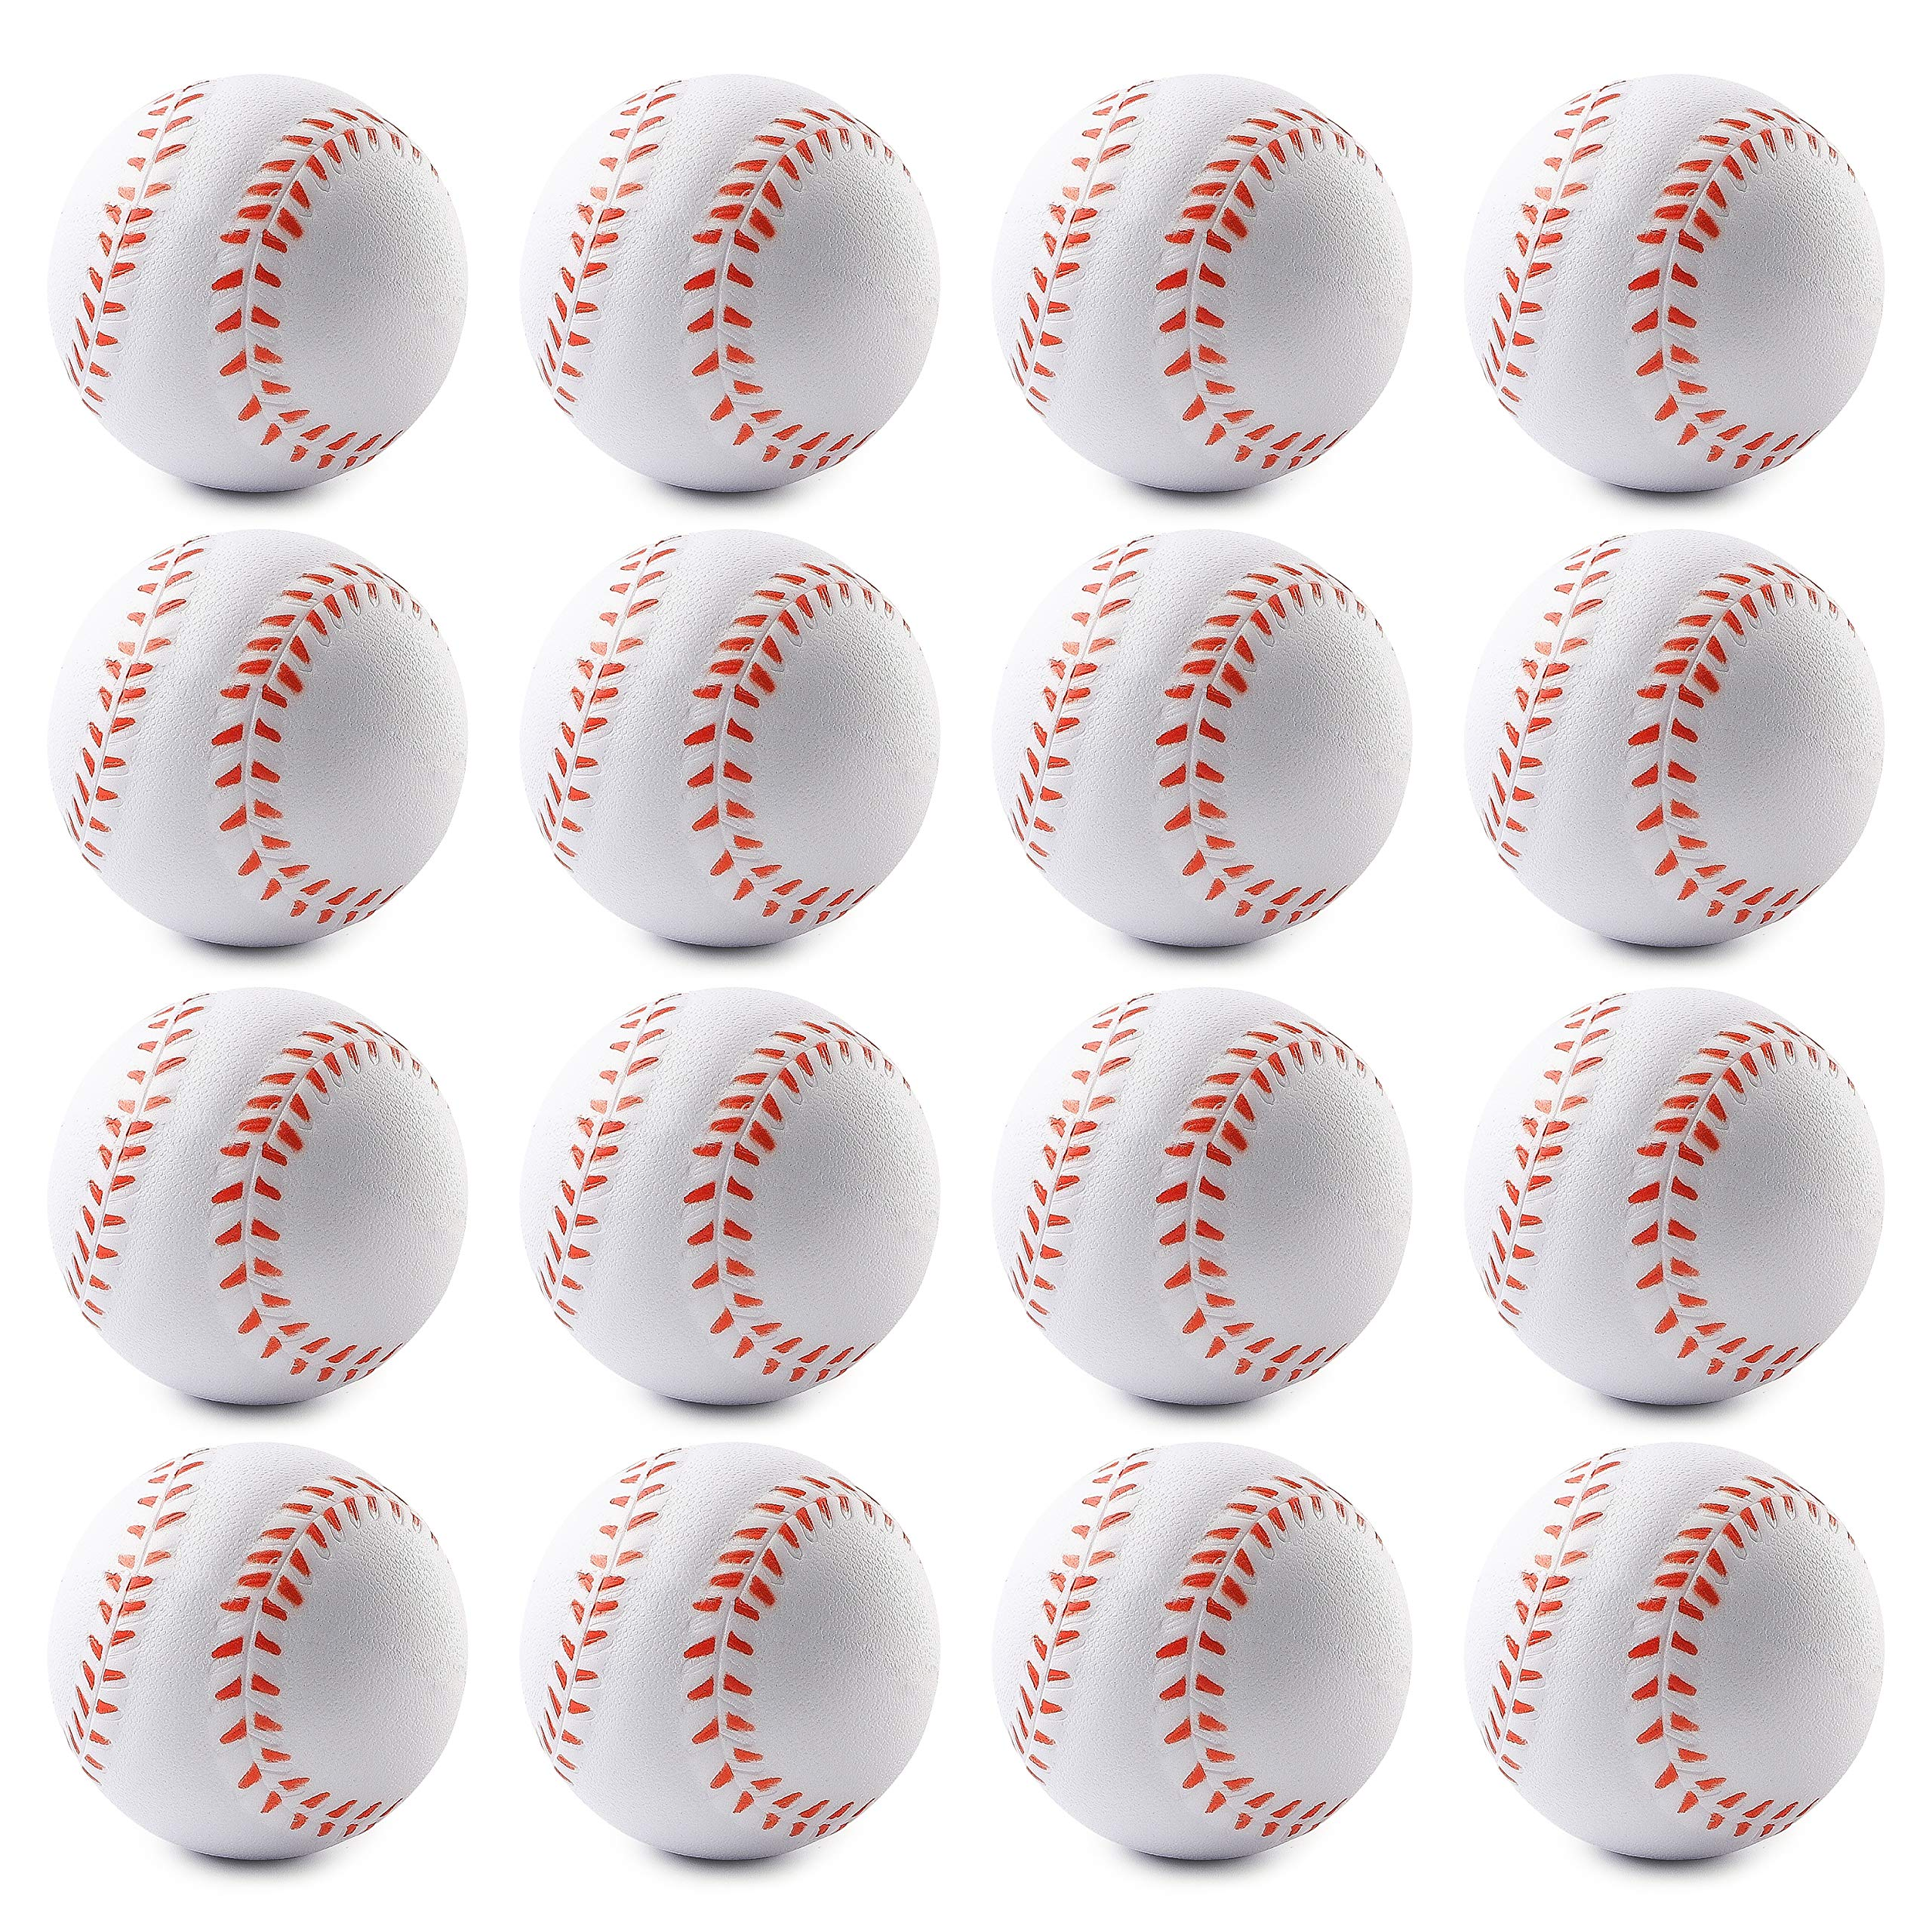 WATINC 16 Pcs 2.5Inch Baseball Squishies Soft Foam Sports Balls for Kids Sports Themed Party Favor Toys, Squeeze Balls for Stress Relief, Ball Games and Prizes, Perfect for Small Hands Stress Balls